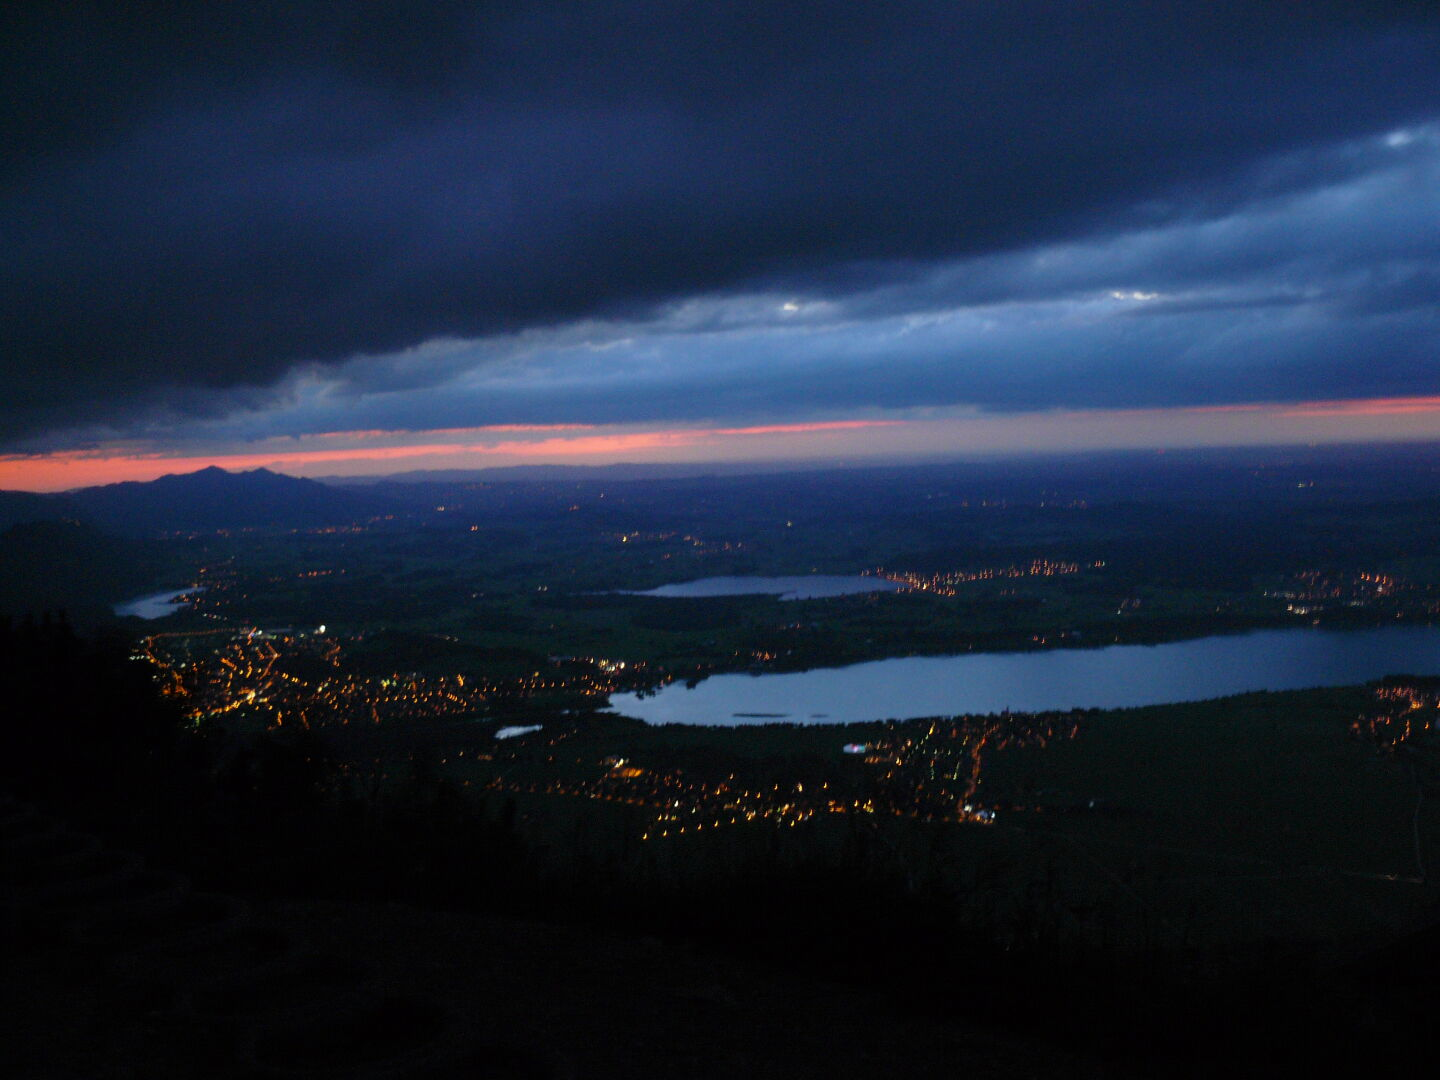 The Forggensee and city of Füssen in the evening, as seen from Tegelberghaus.